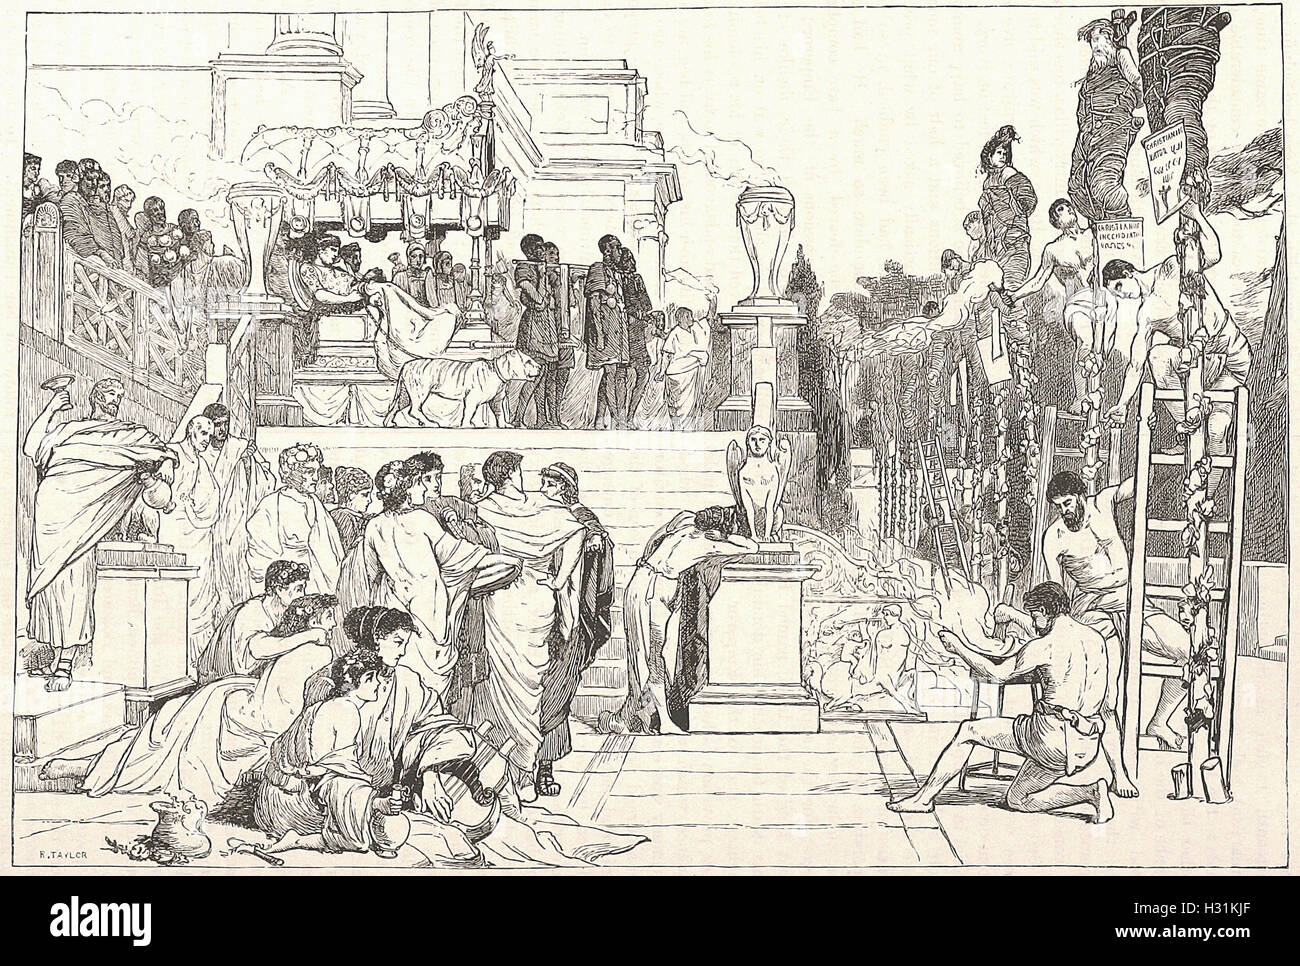 NERO'S TORCHES BURNING OF CHRISTIANS AT ROME. - from 'Cassell's Illustrated Universal History' - 1882 Stock Photo